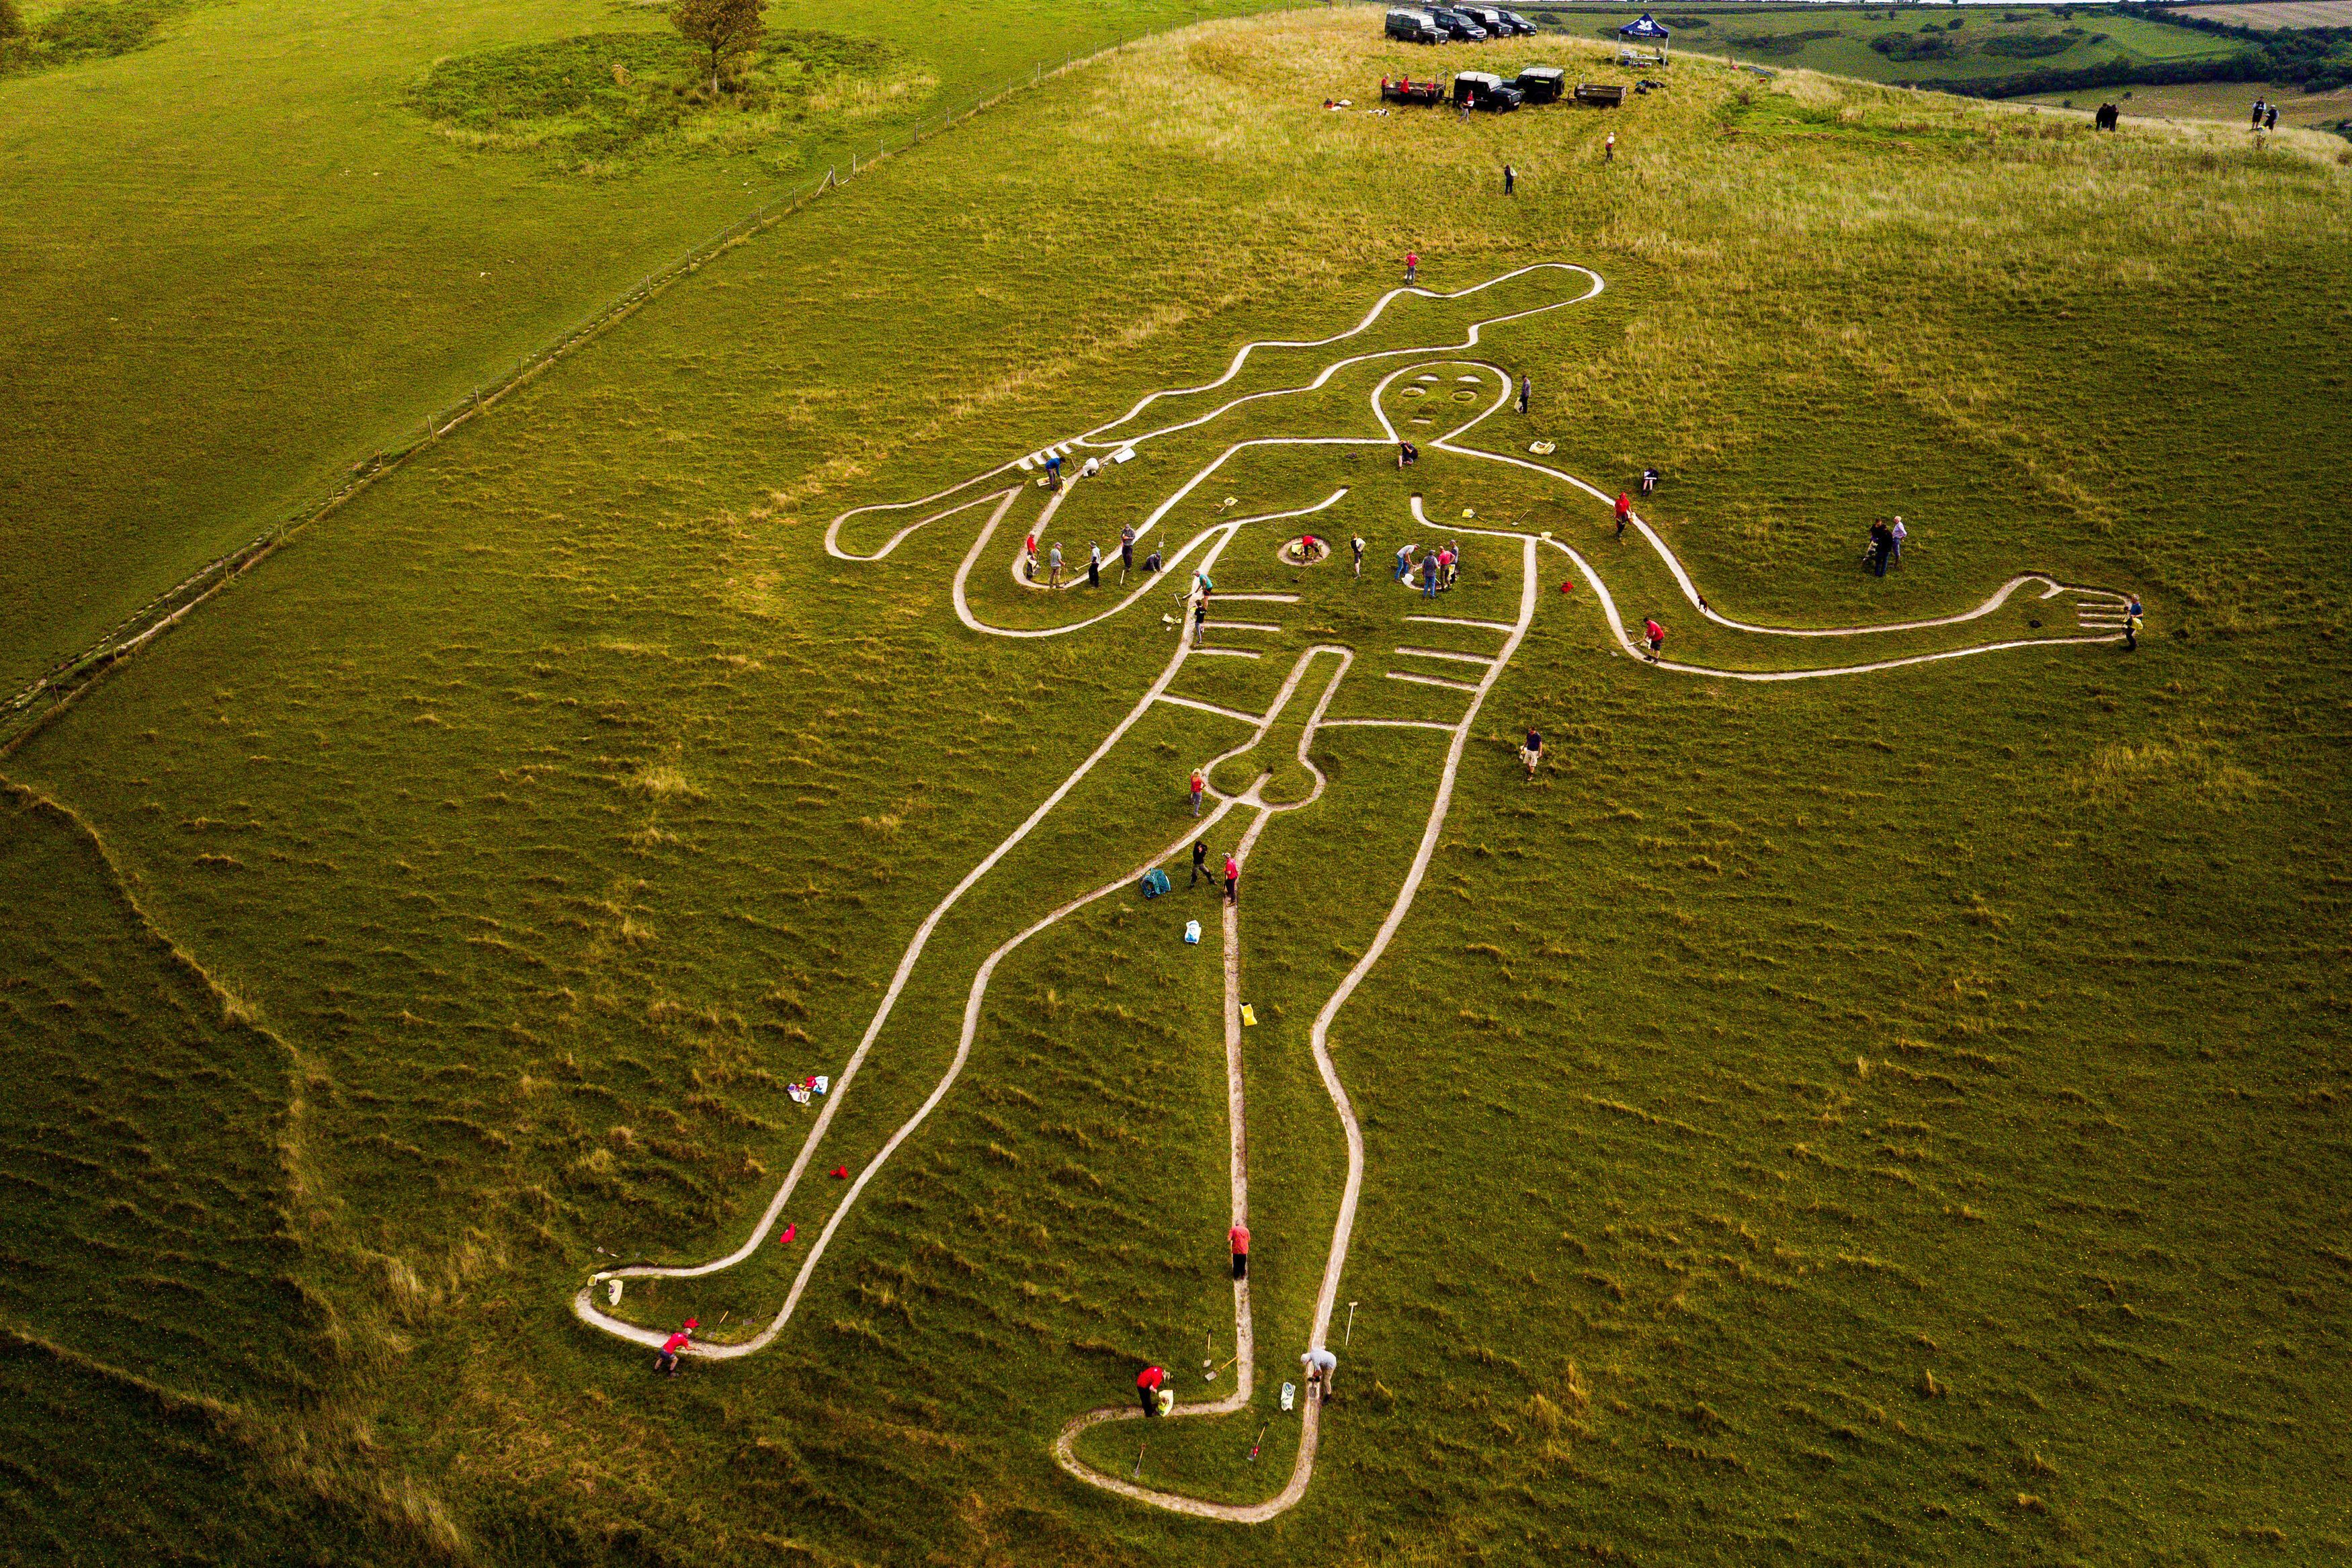 Volunteers work to repair and refresh the ancient Cerne Abbas Giant in Dorset, England.